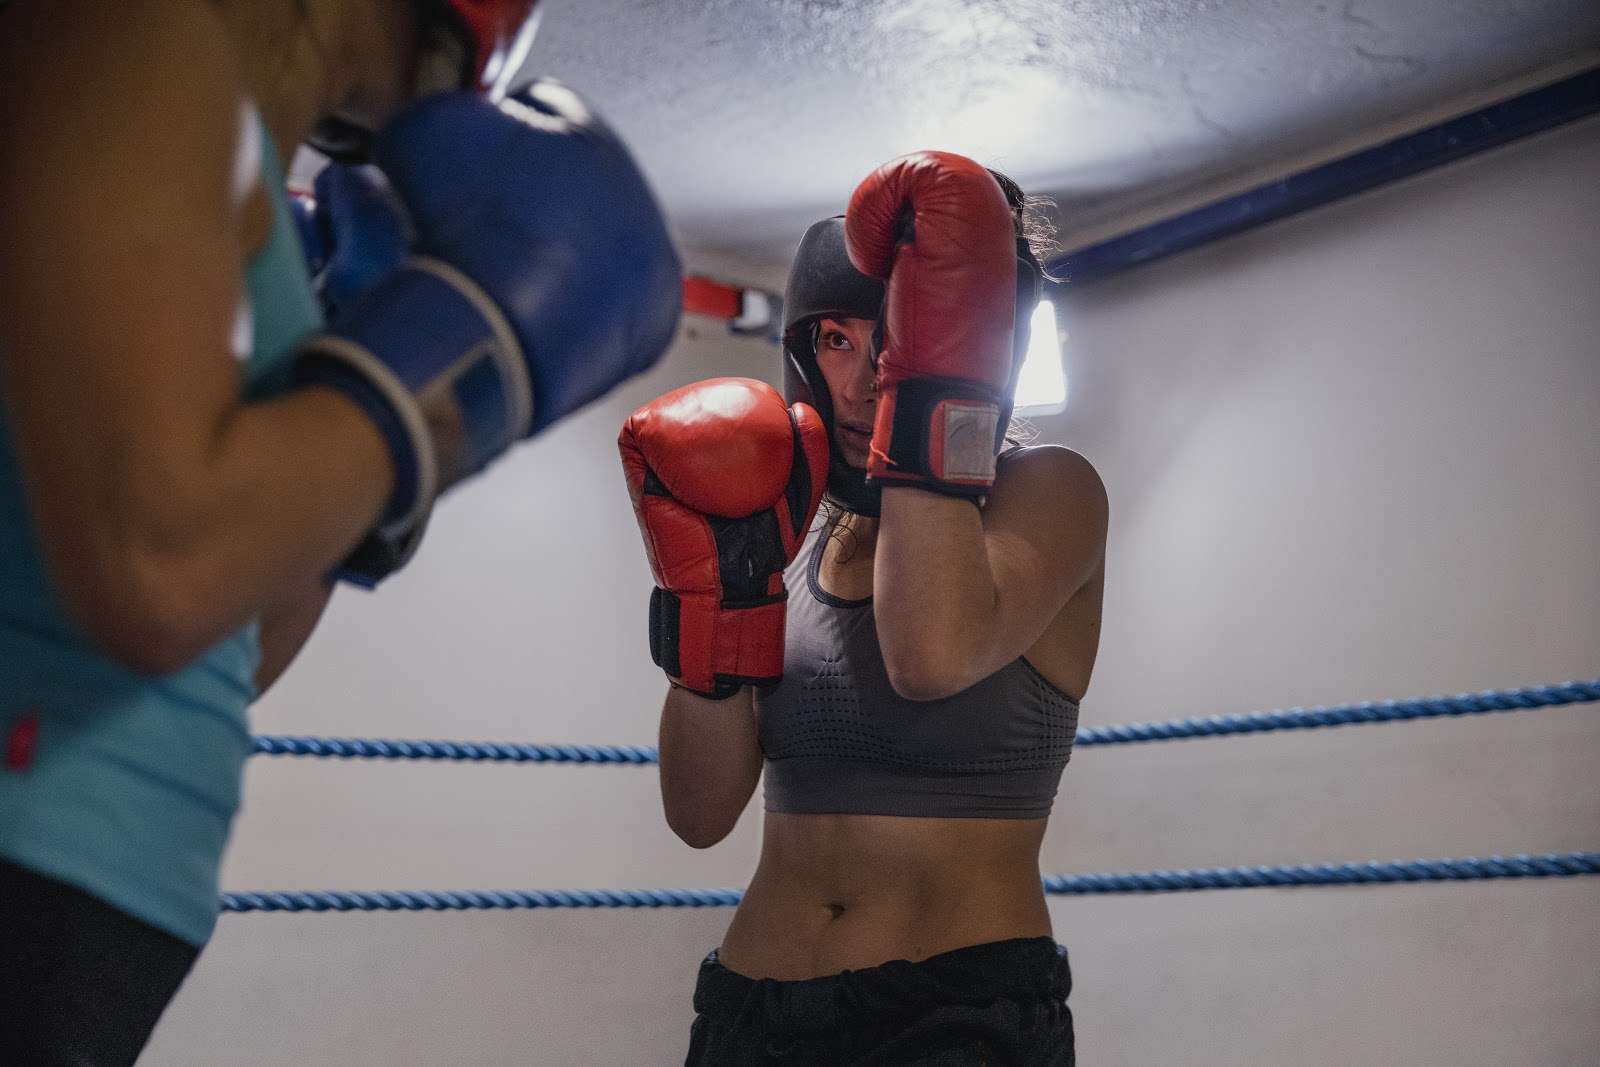 Two female boxers sparring and training with a high guard to block attacks.